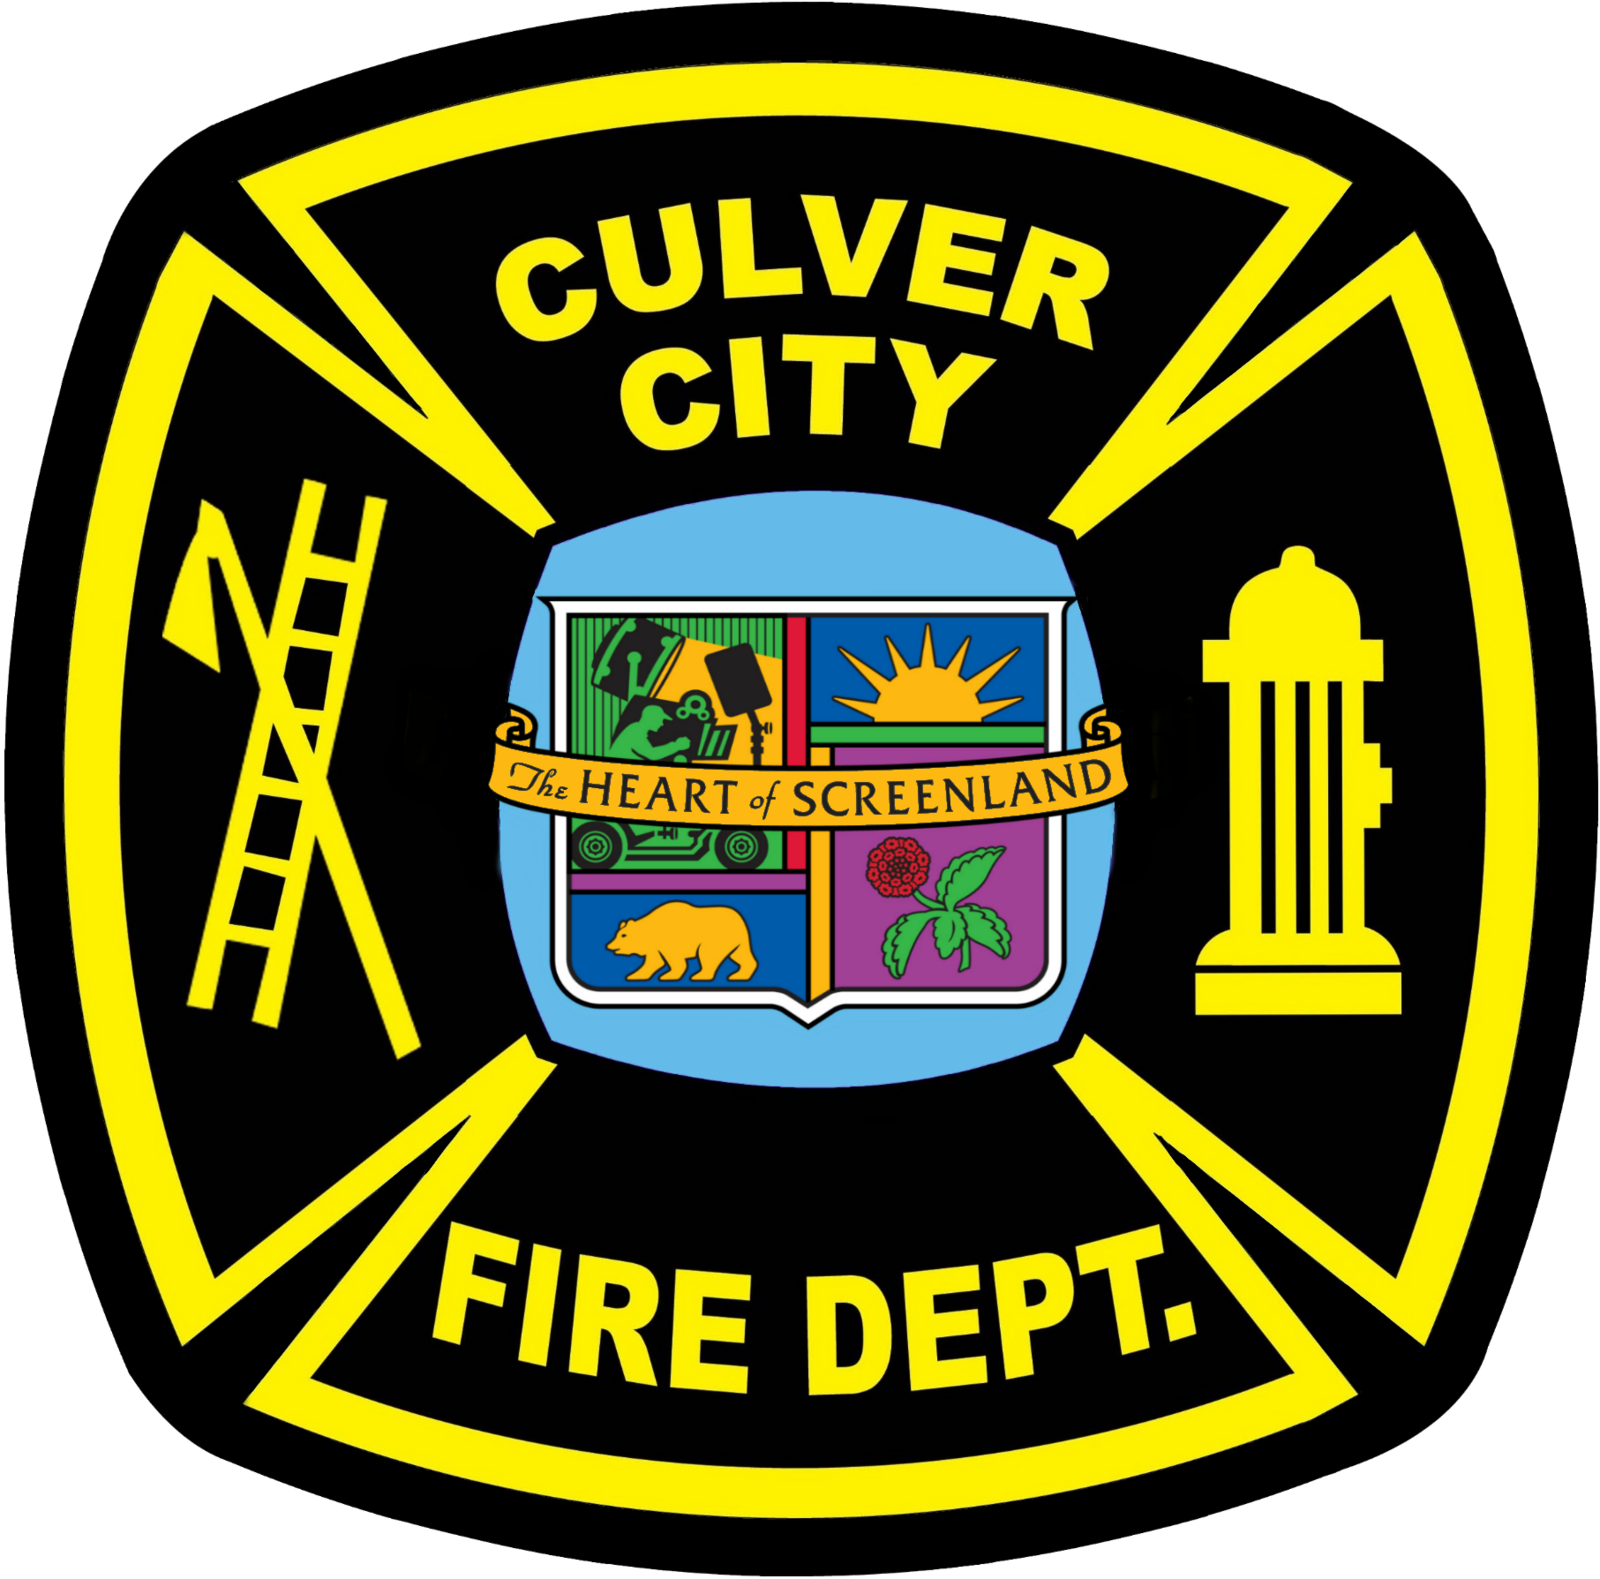 The logo of the city agency promoting this Community Connect program.